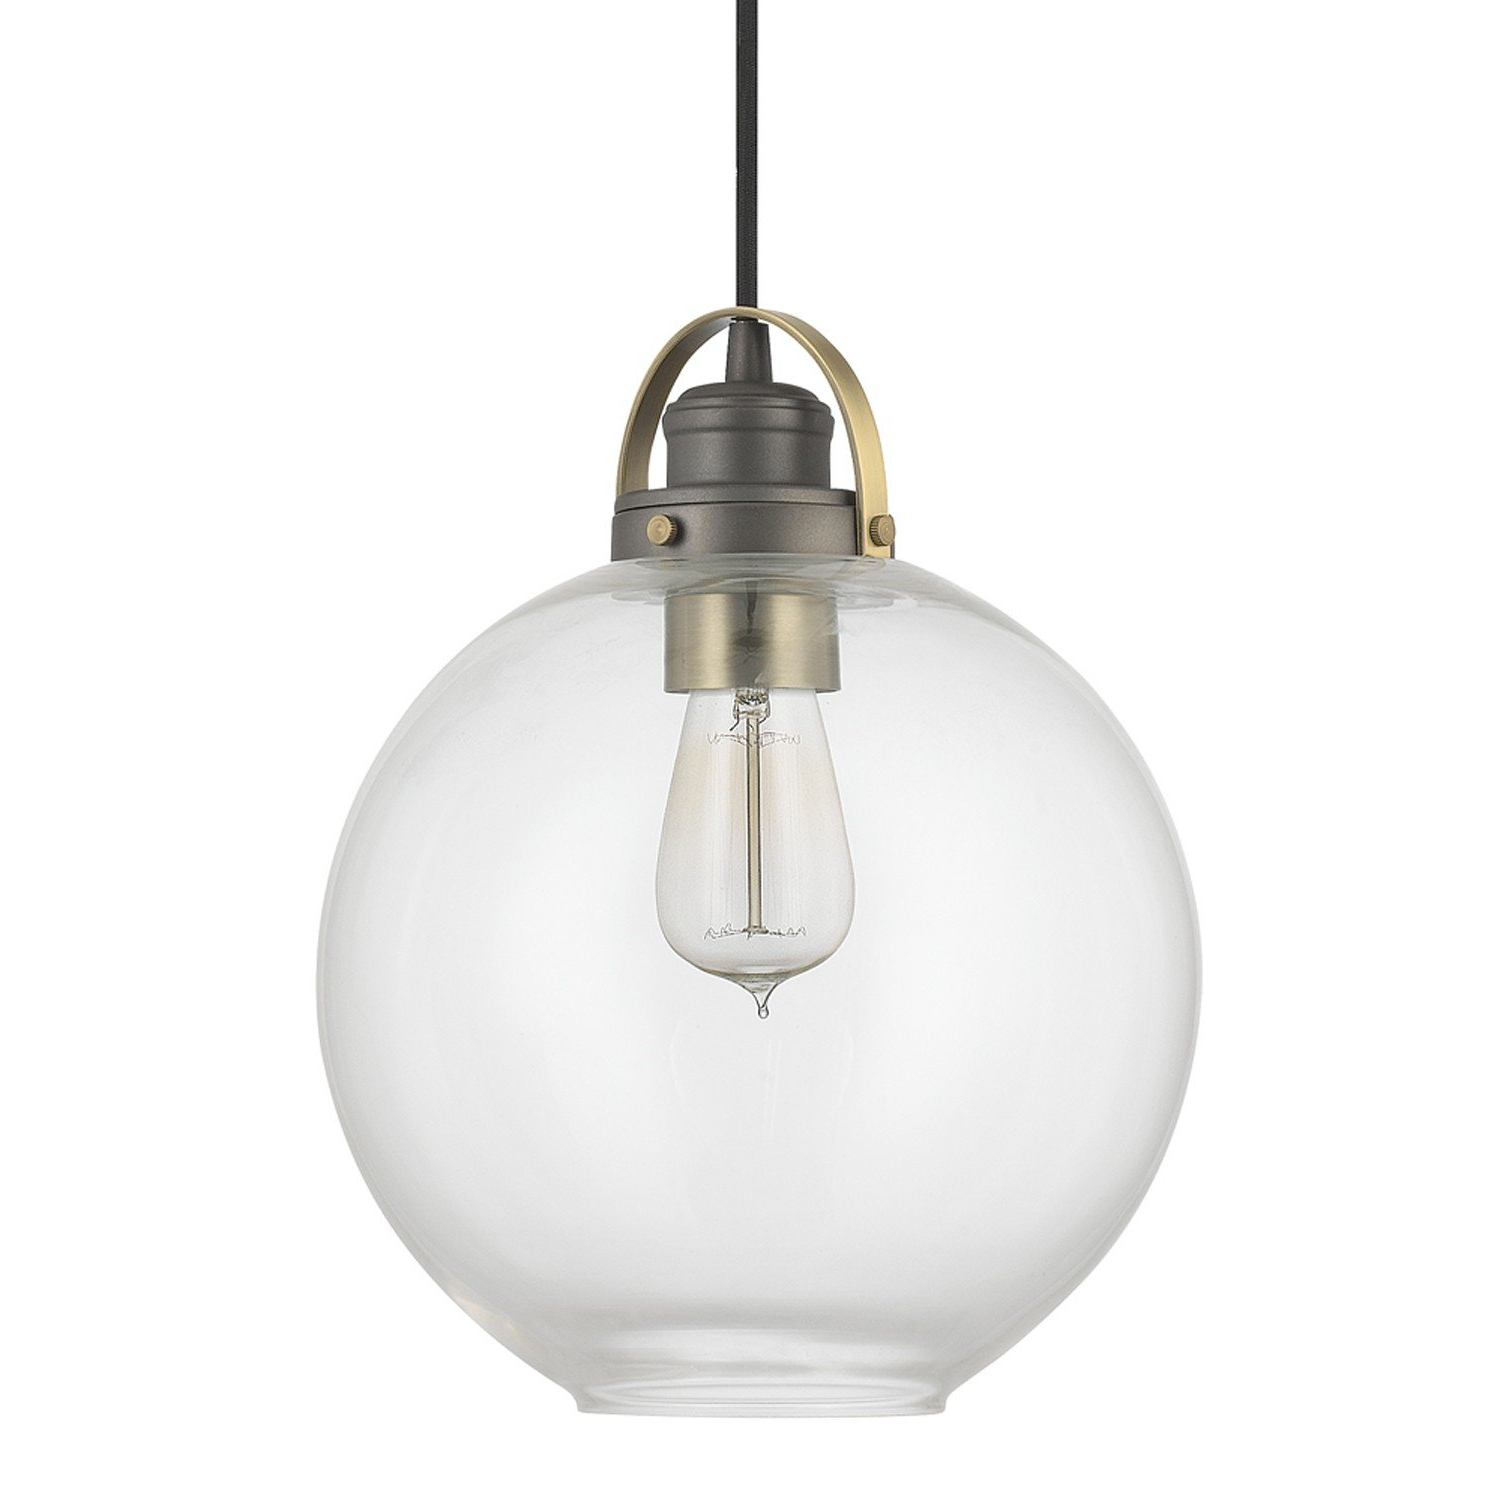 Popular Oldbury 1 Light Single Cylinder Pendants Pertaining To Andover Mills Betsy 1 Light Single Globe Pendant (View 15 of 20)